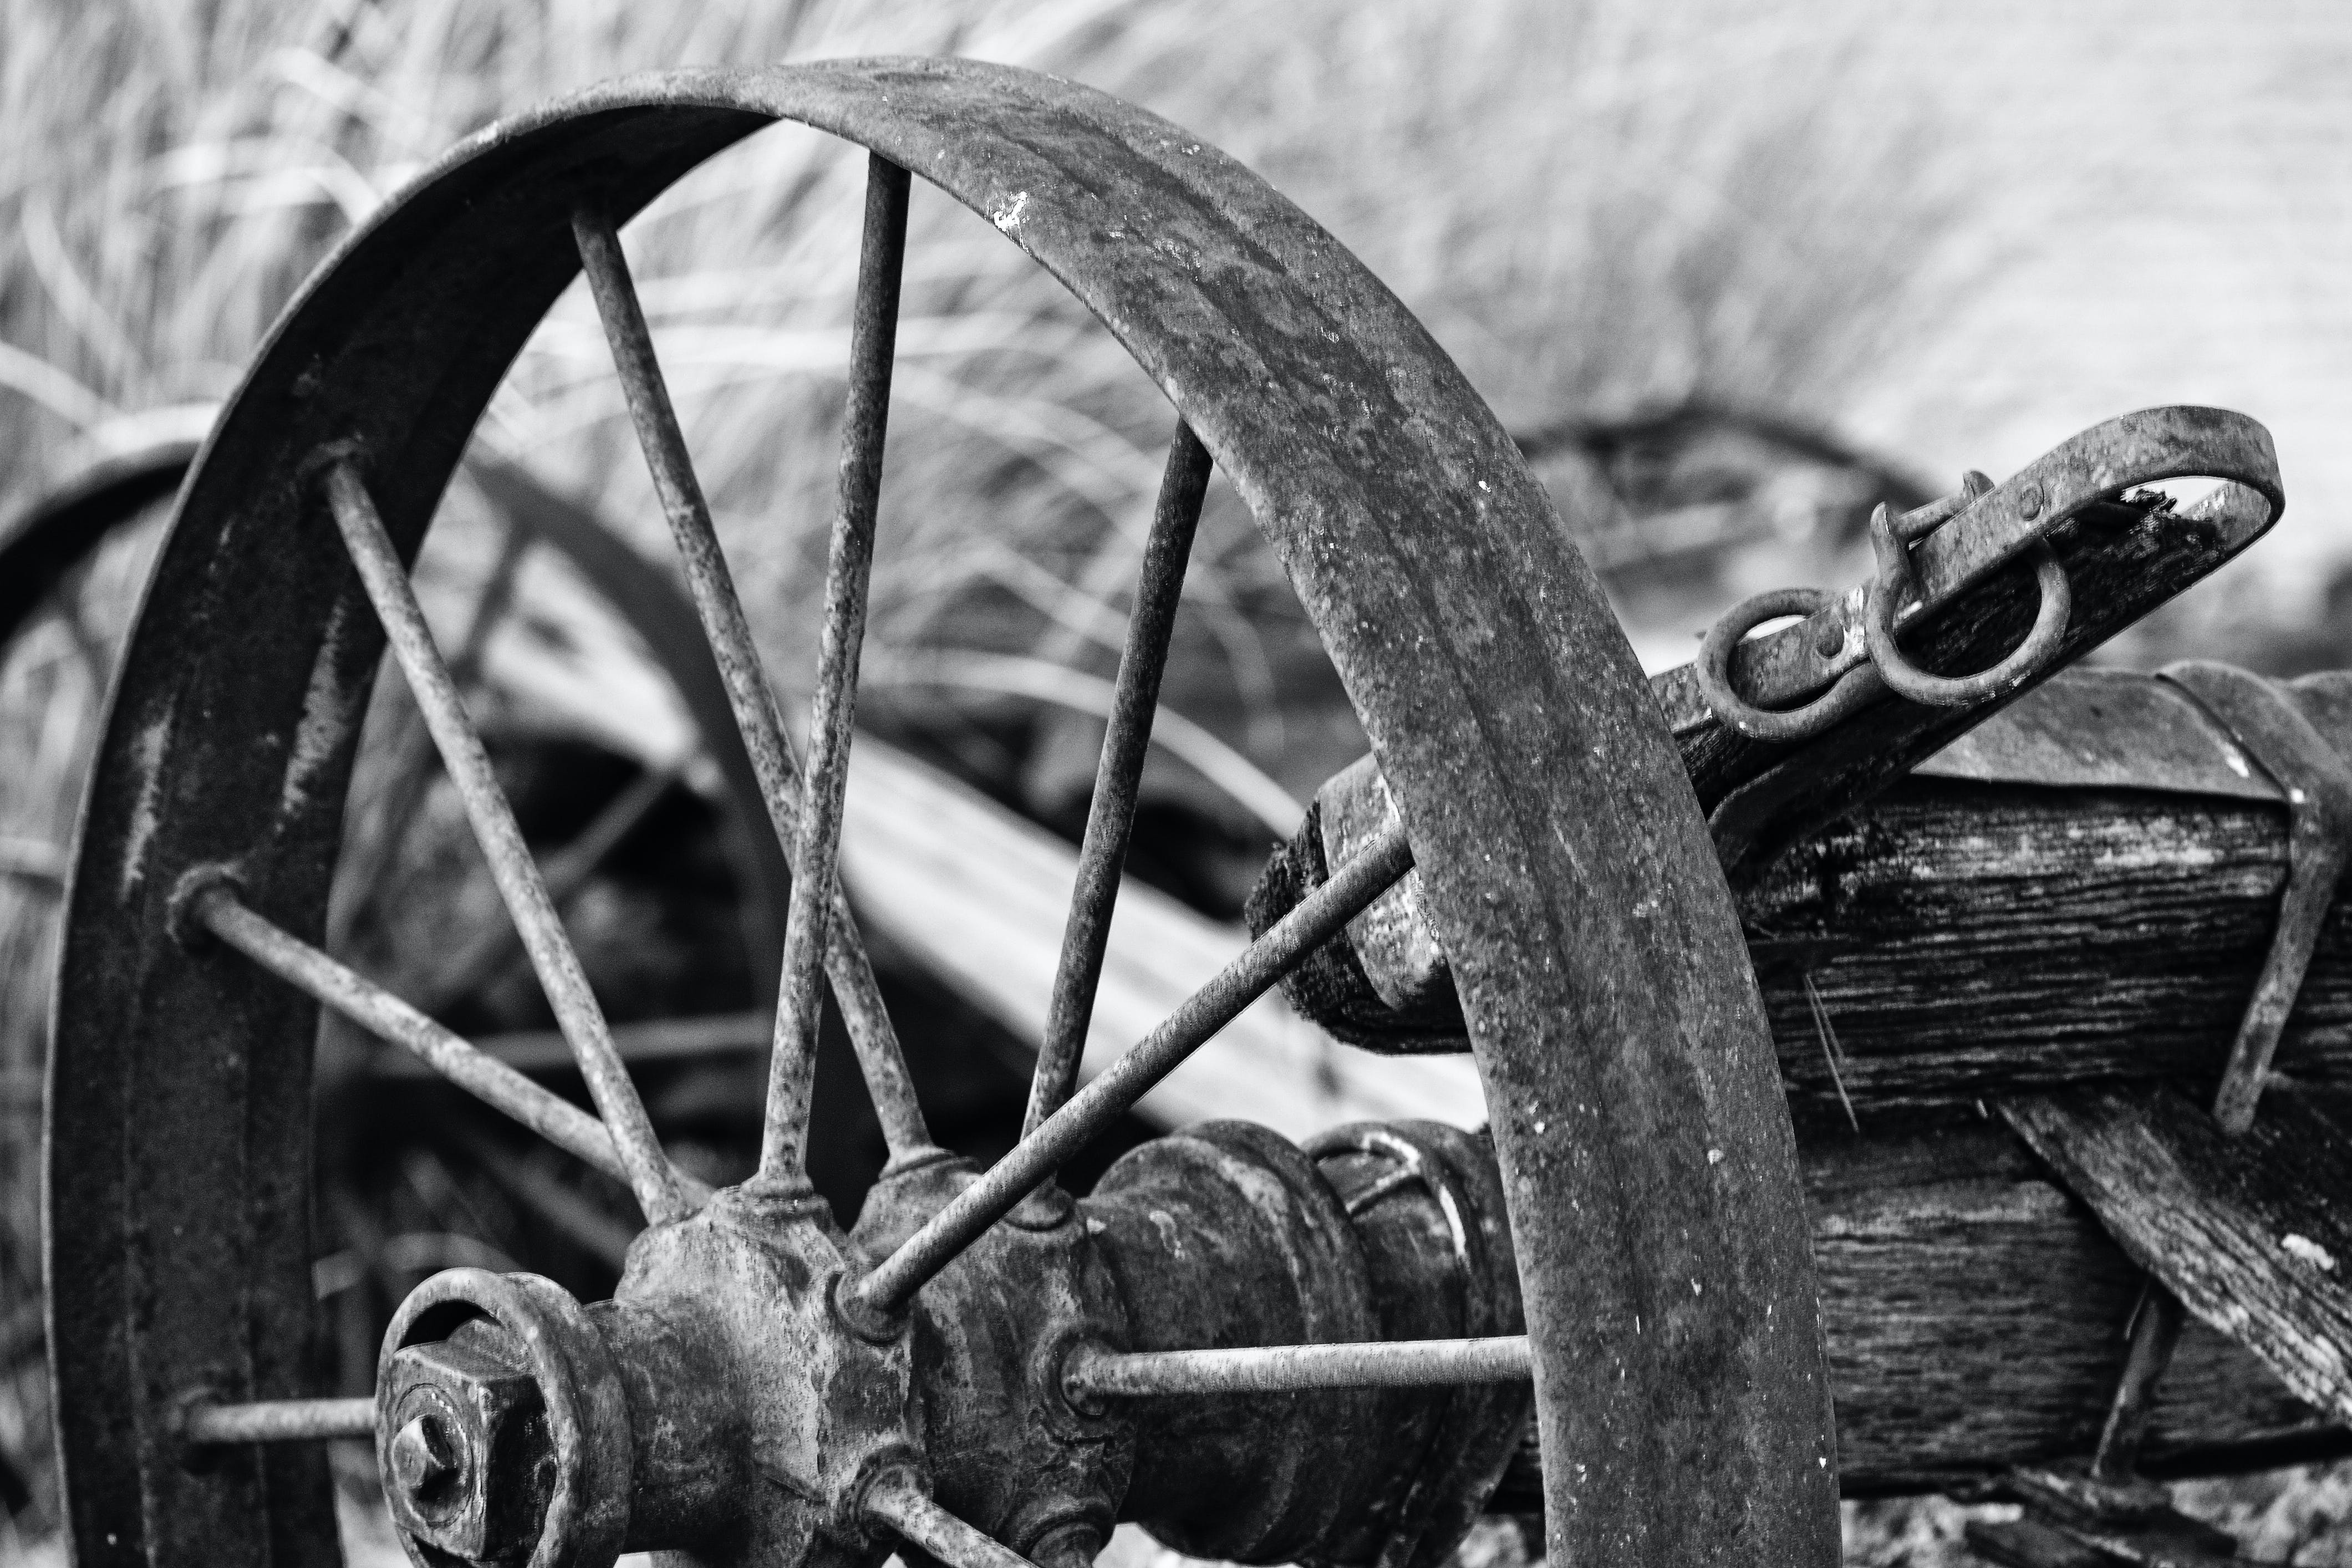 Rusted Wheel Grayscale Photo